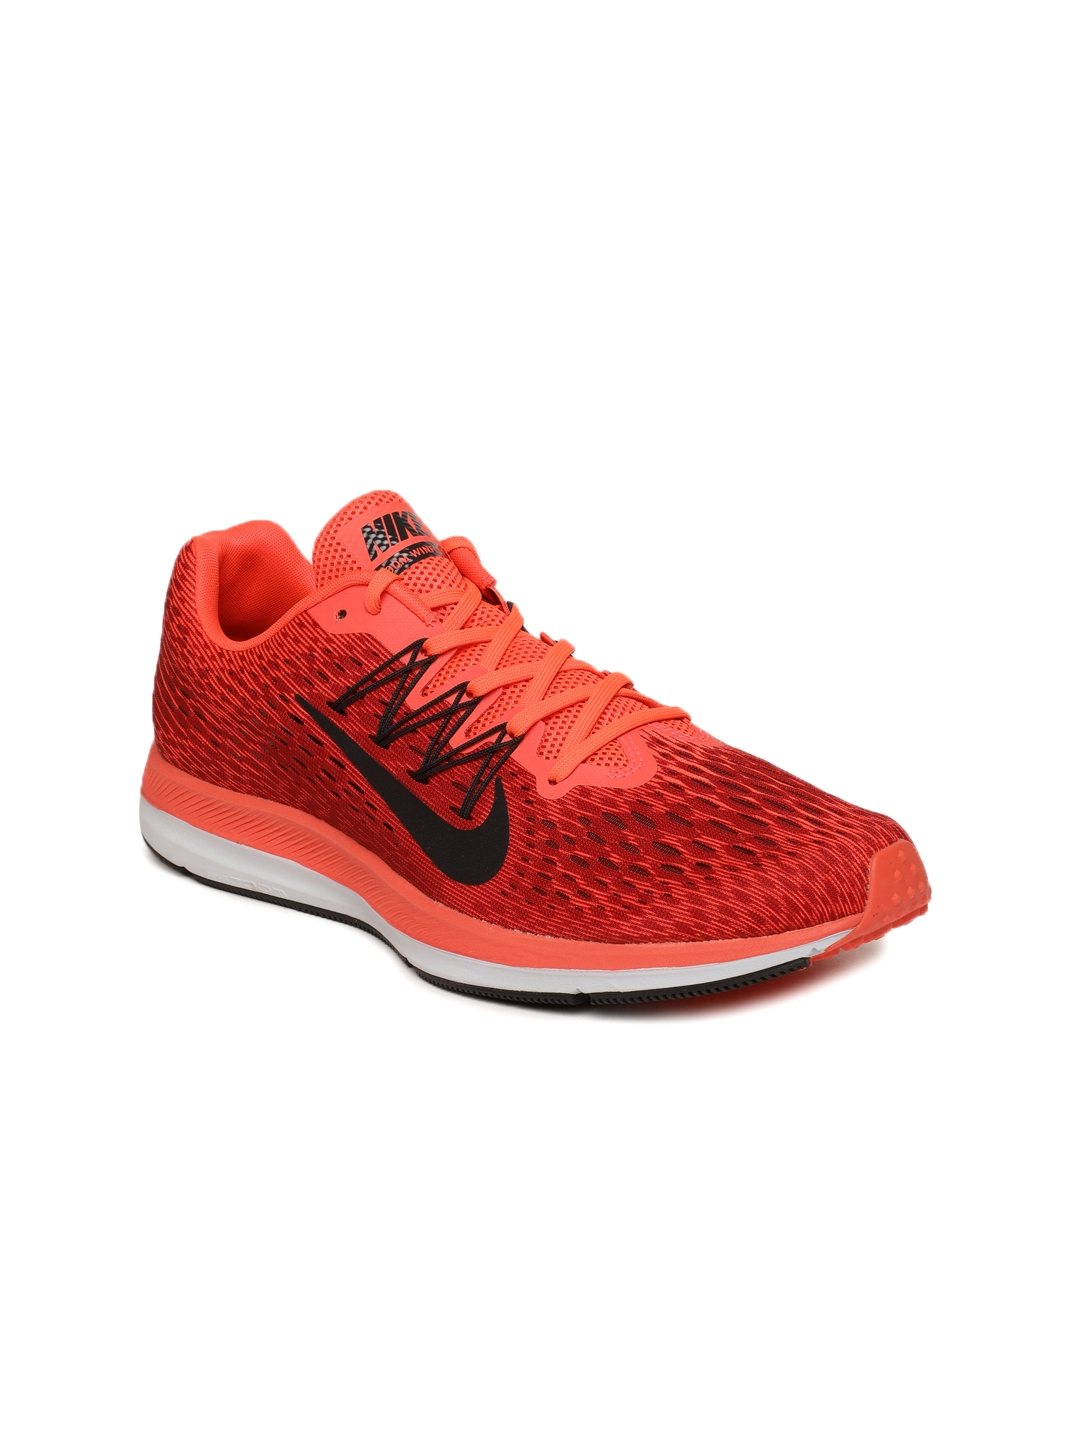 91215e7c7dbf Nike Men Fluorescent Orange   Red Printed Air Zoom Winflo 5 Running Shoes